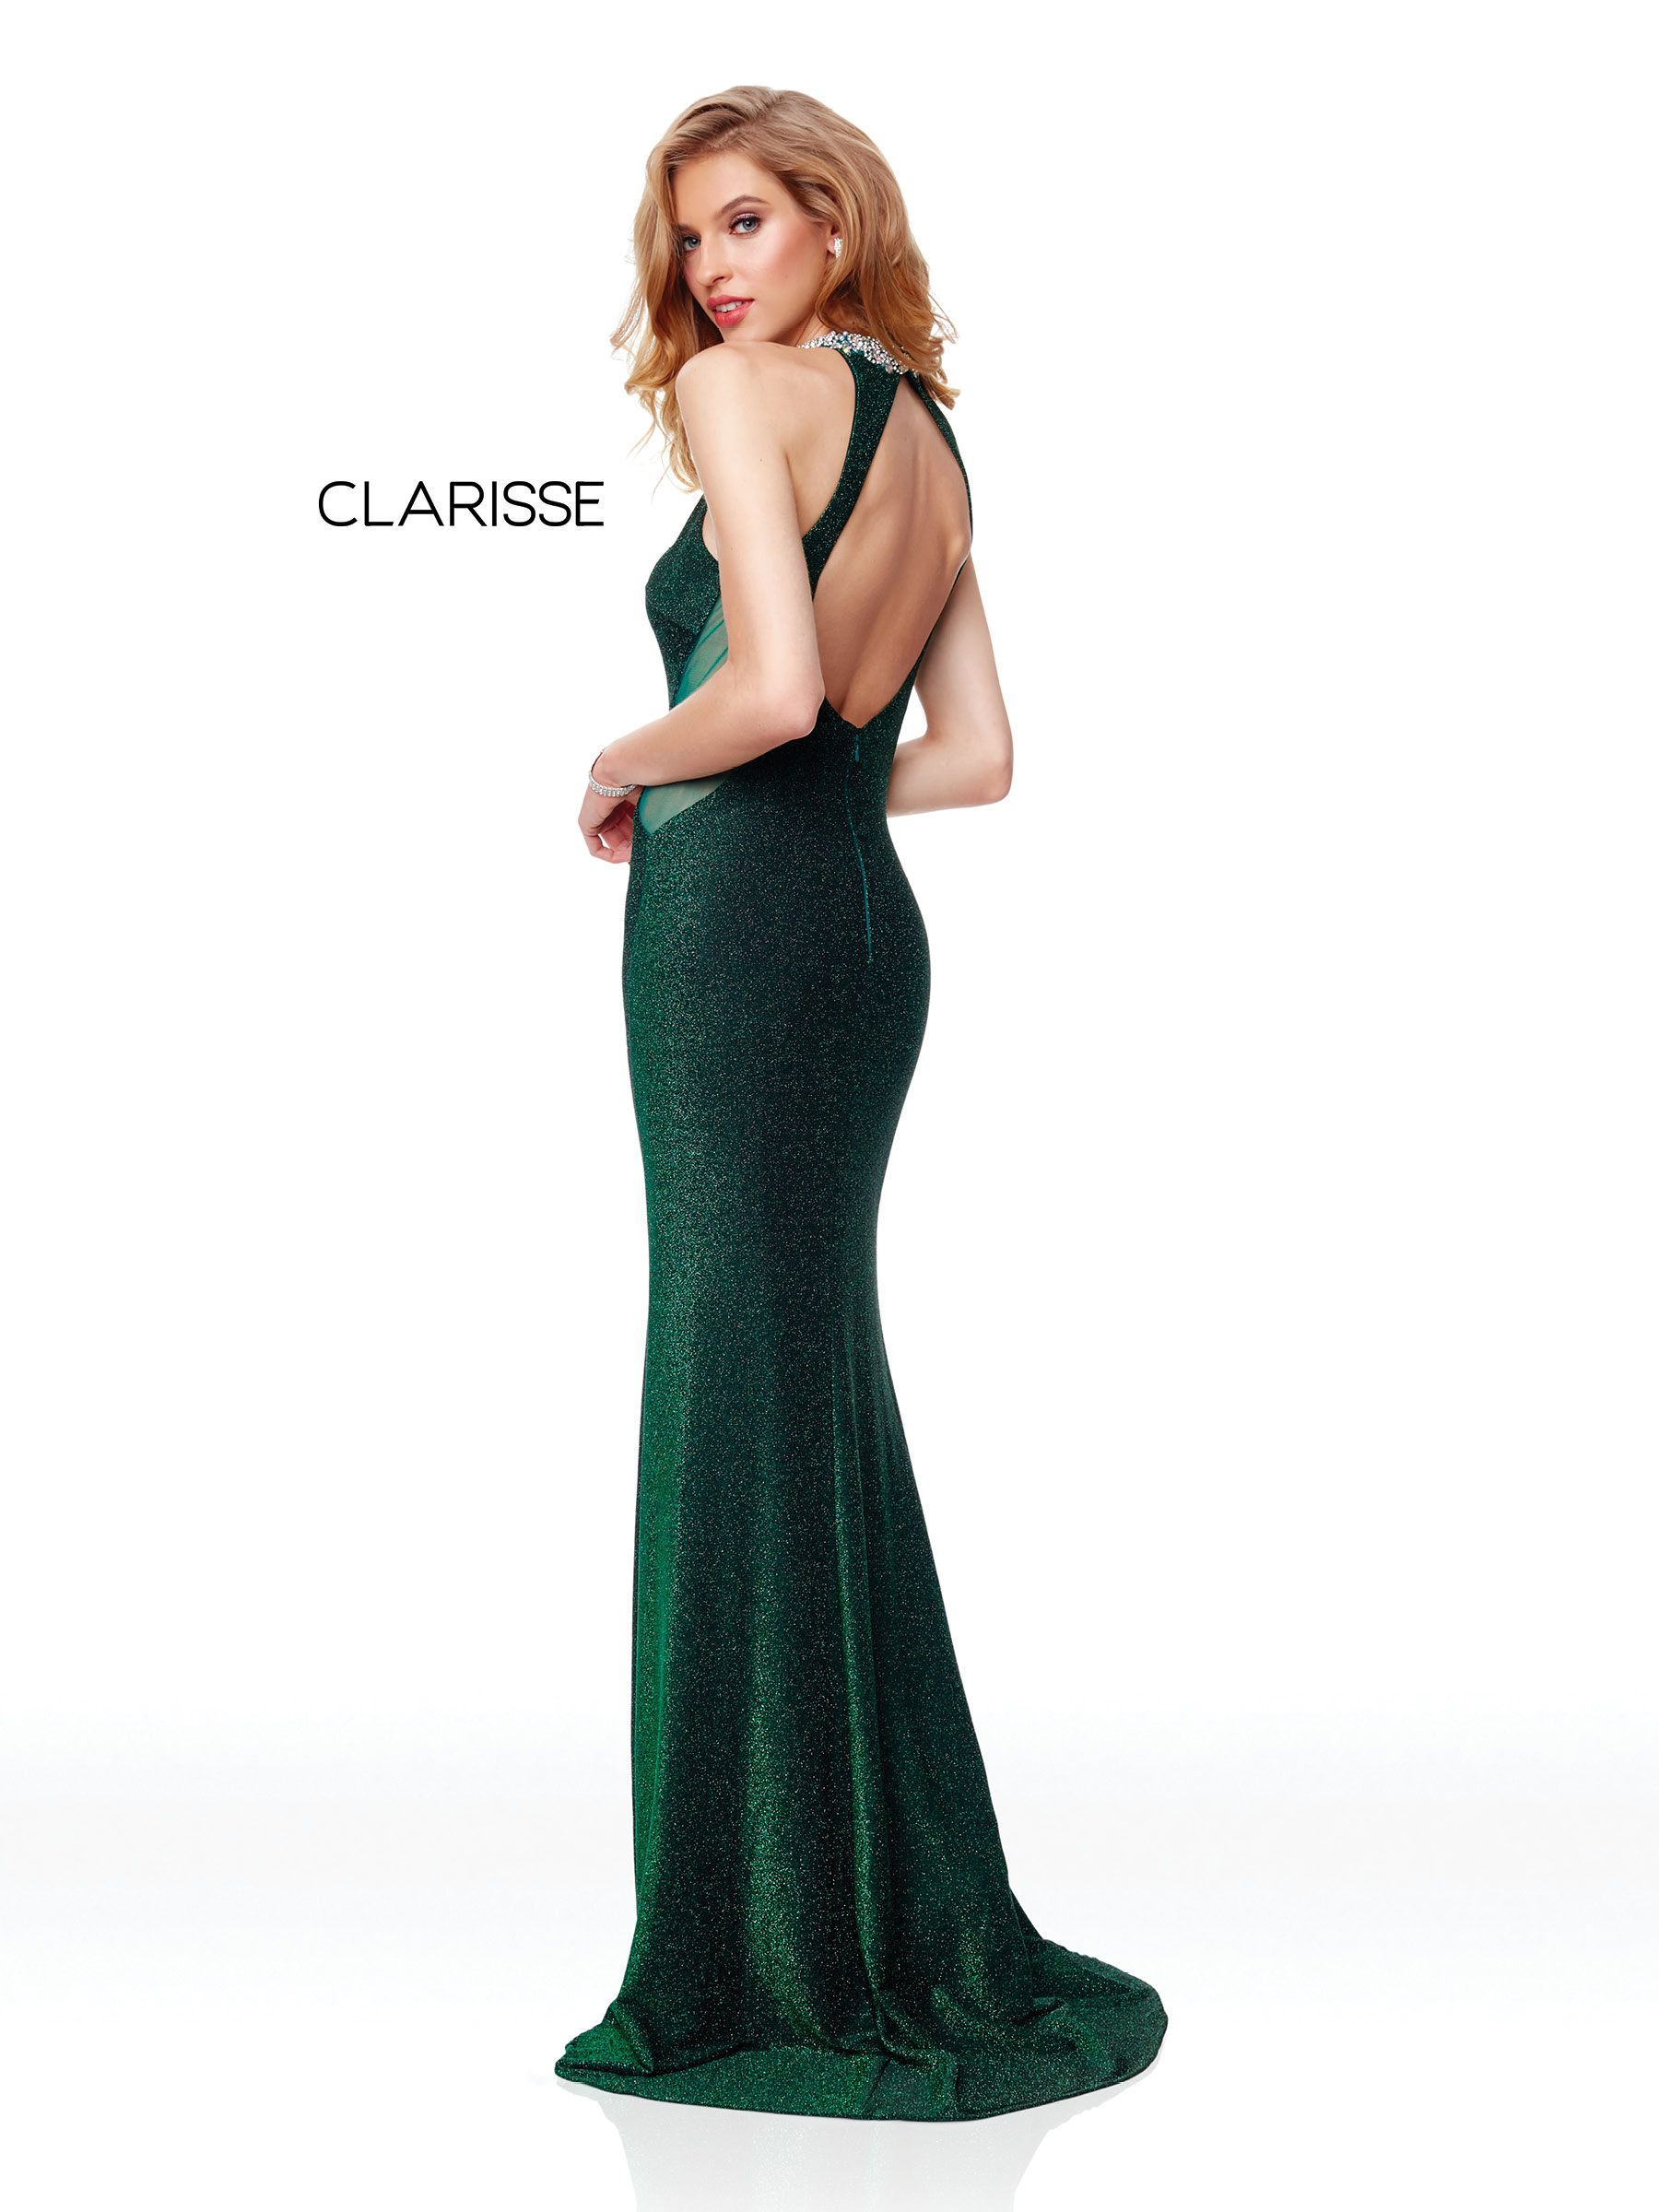 80427a6789d 3745 - Emerald green shimmer jersey prom dress with a beaded detail halter  neck and an open back